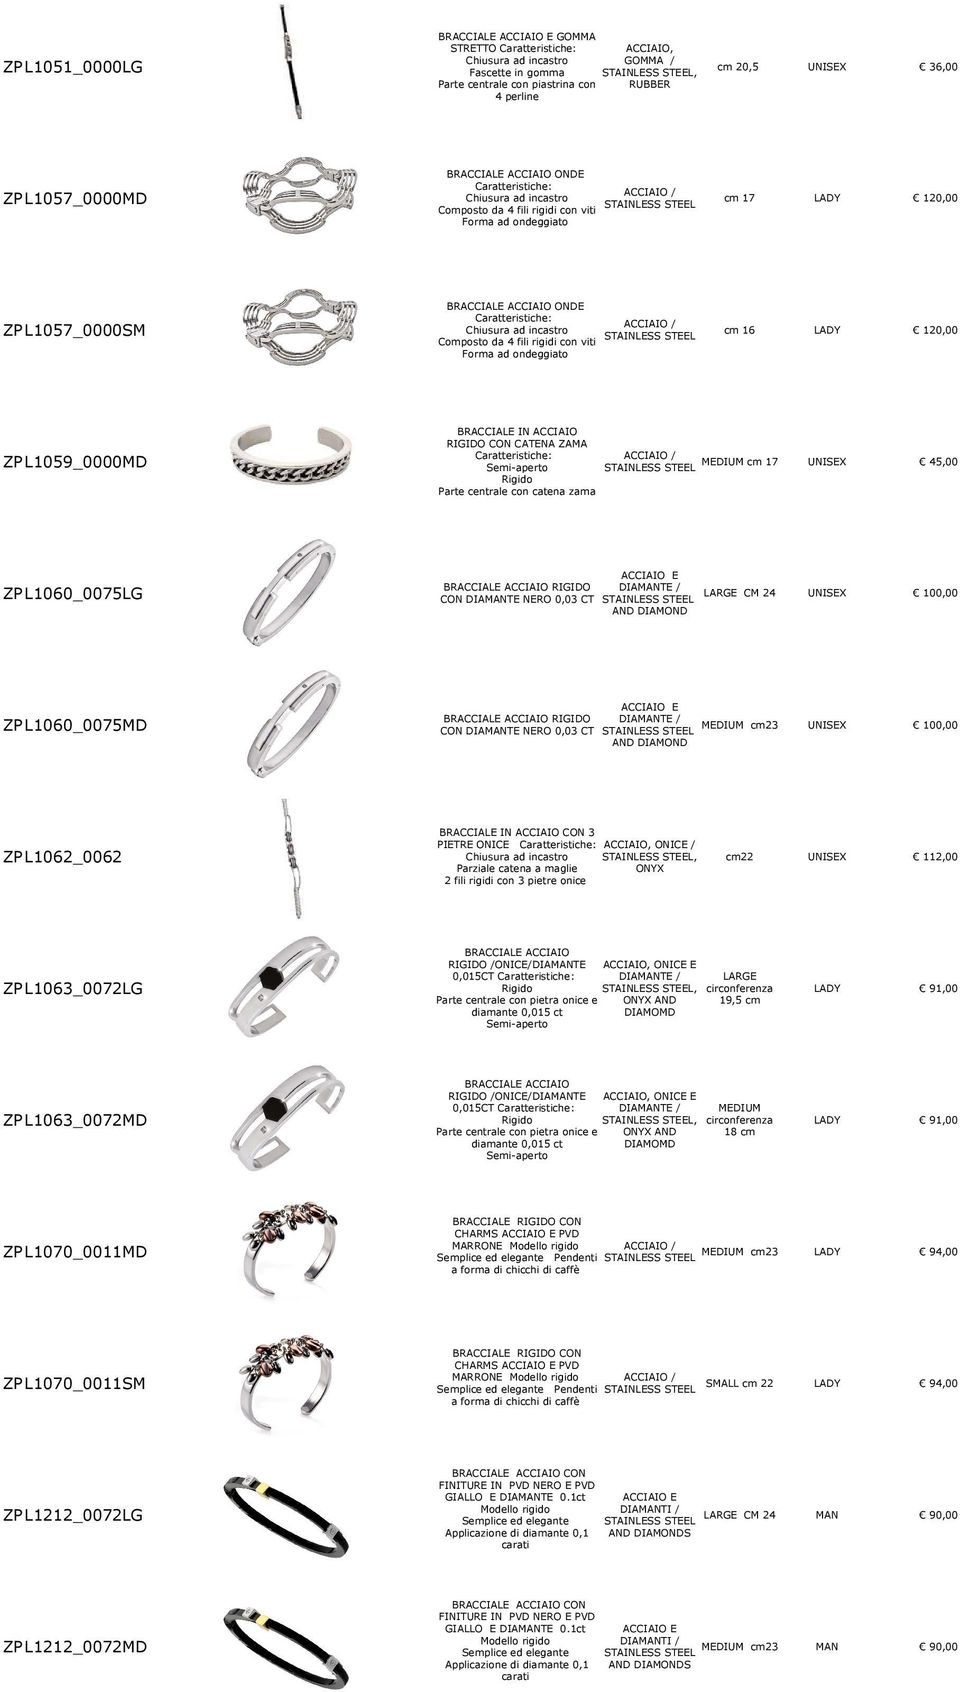 MEDIUM 17 Semi-aperto Rigido Parte centrale con catena zama 45,00 ZP L1060_0075LG BRACCIALE ACCIAIO RIGIDO DIATE / CON DIATE NERO 0,03 CT AND DIAMOND LARGE CM 24 100,00 ZP L1060_0075MD BRACCIALE